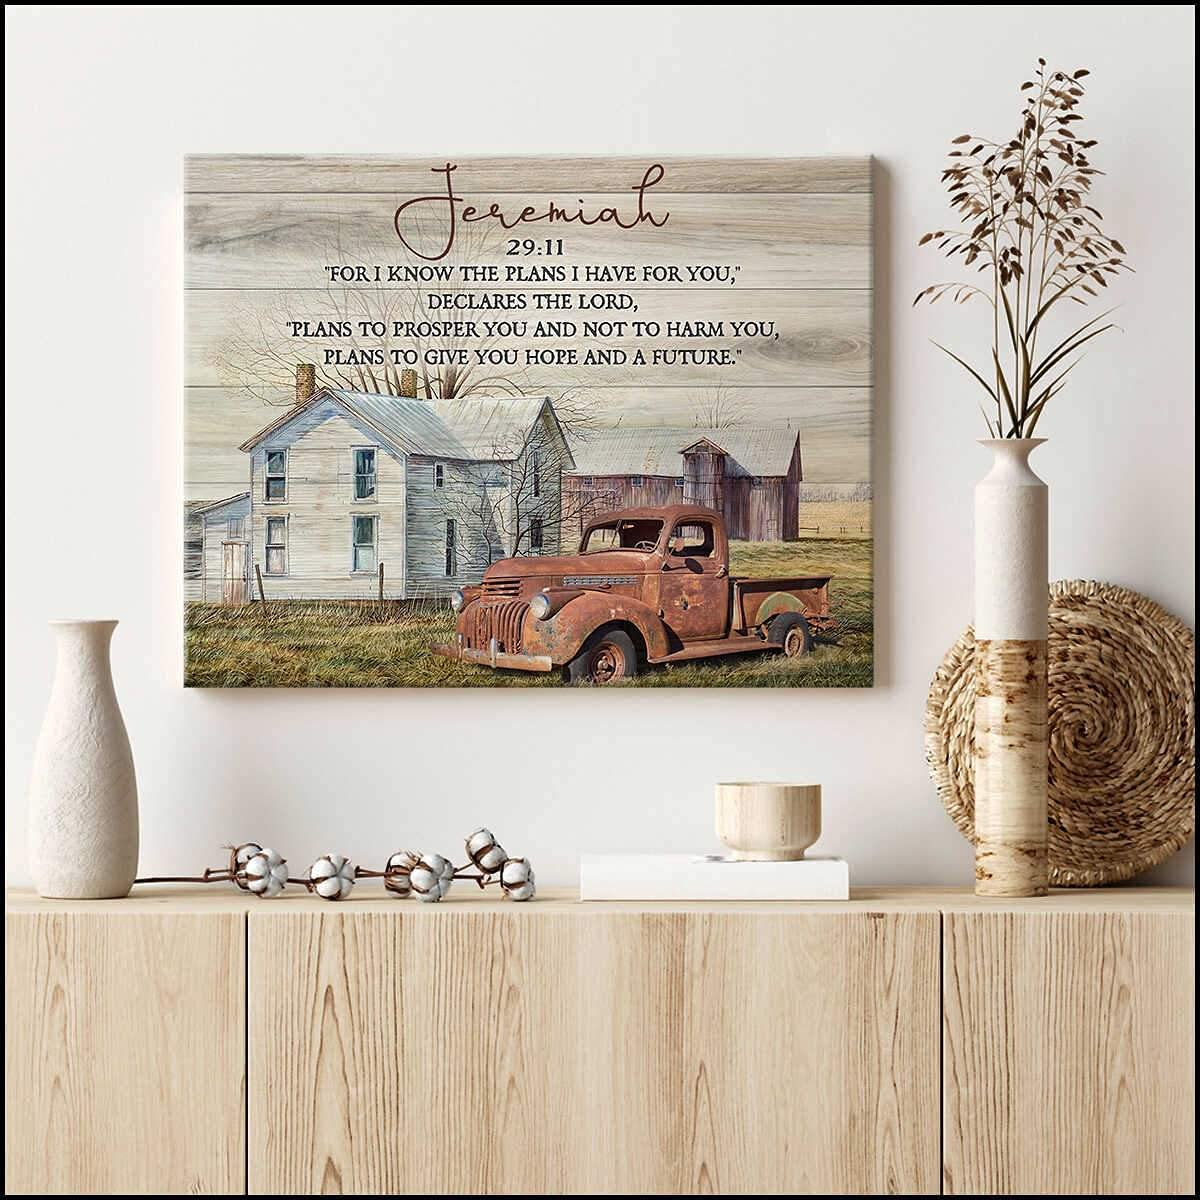 Country Living and Rusty Old Vintage Truck Jeremiah 29 11 Farm Farmhouse Wall Art Decor (canvas framed, 14x11)